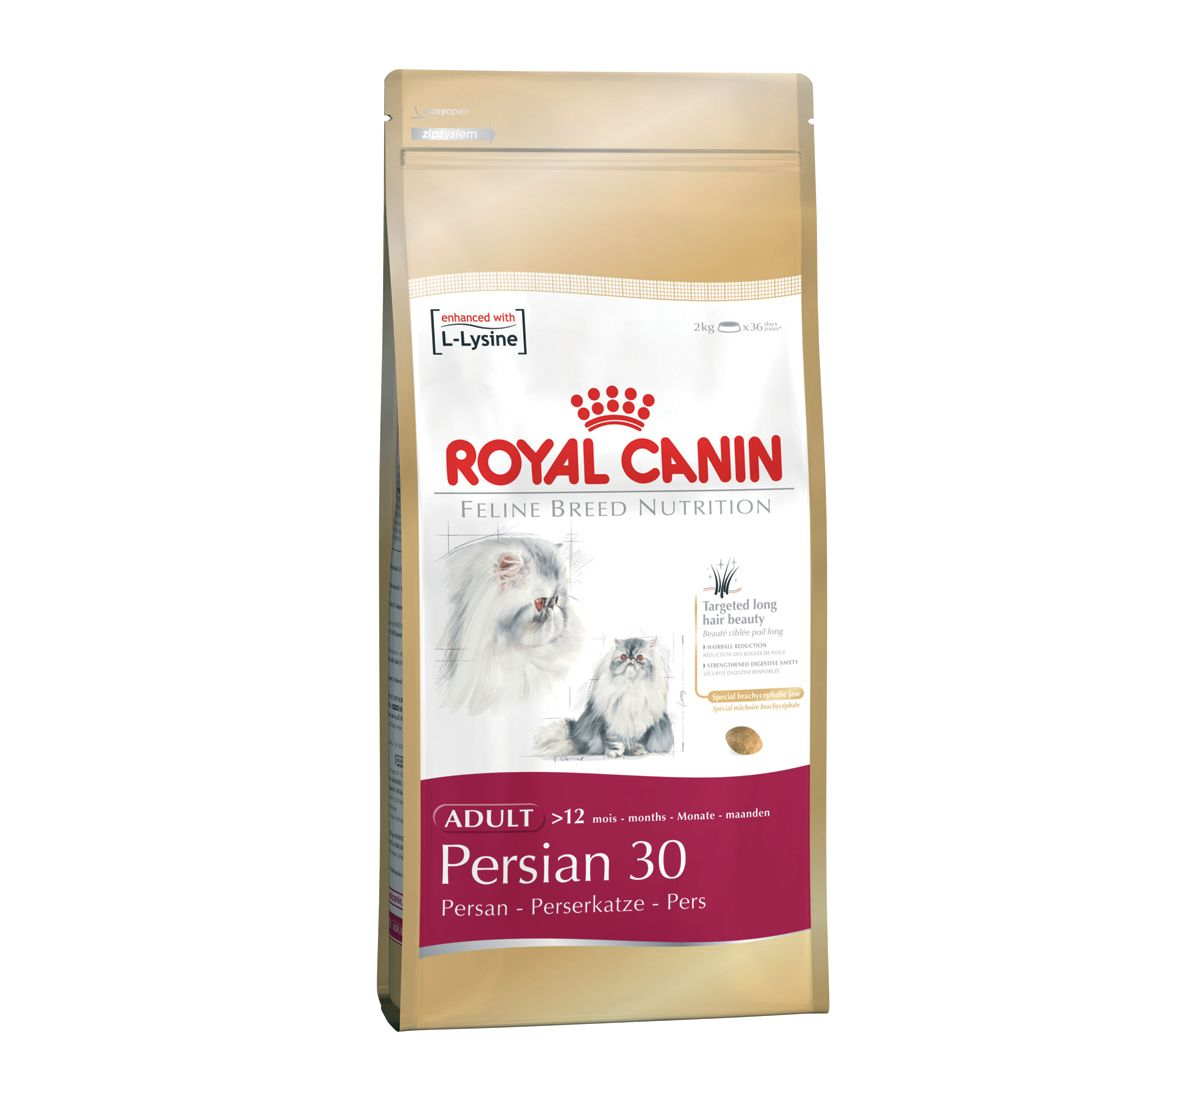 Royal Canin Feline Health Nutrition Dry Food For Young Kittens Petco Feline Health Health And Nutrition Dry Cat Food